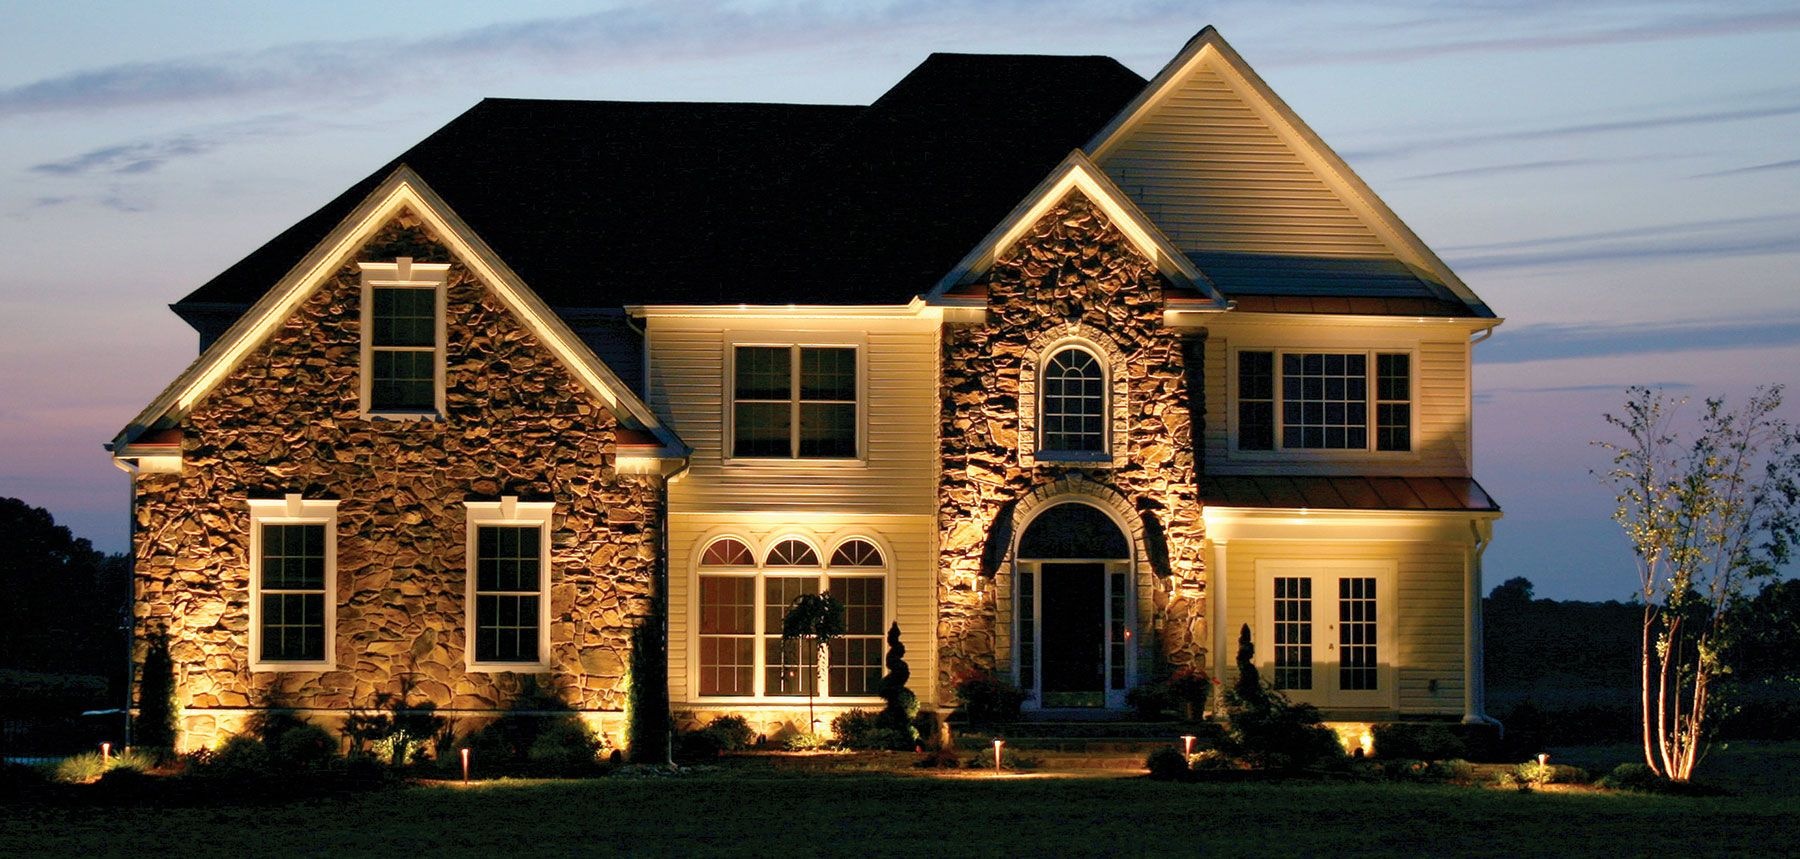 Outdoor Lighting Perspectives Design Experts First Focused On The Stacked  Stone Veneer Using Architectural Highlighting With